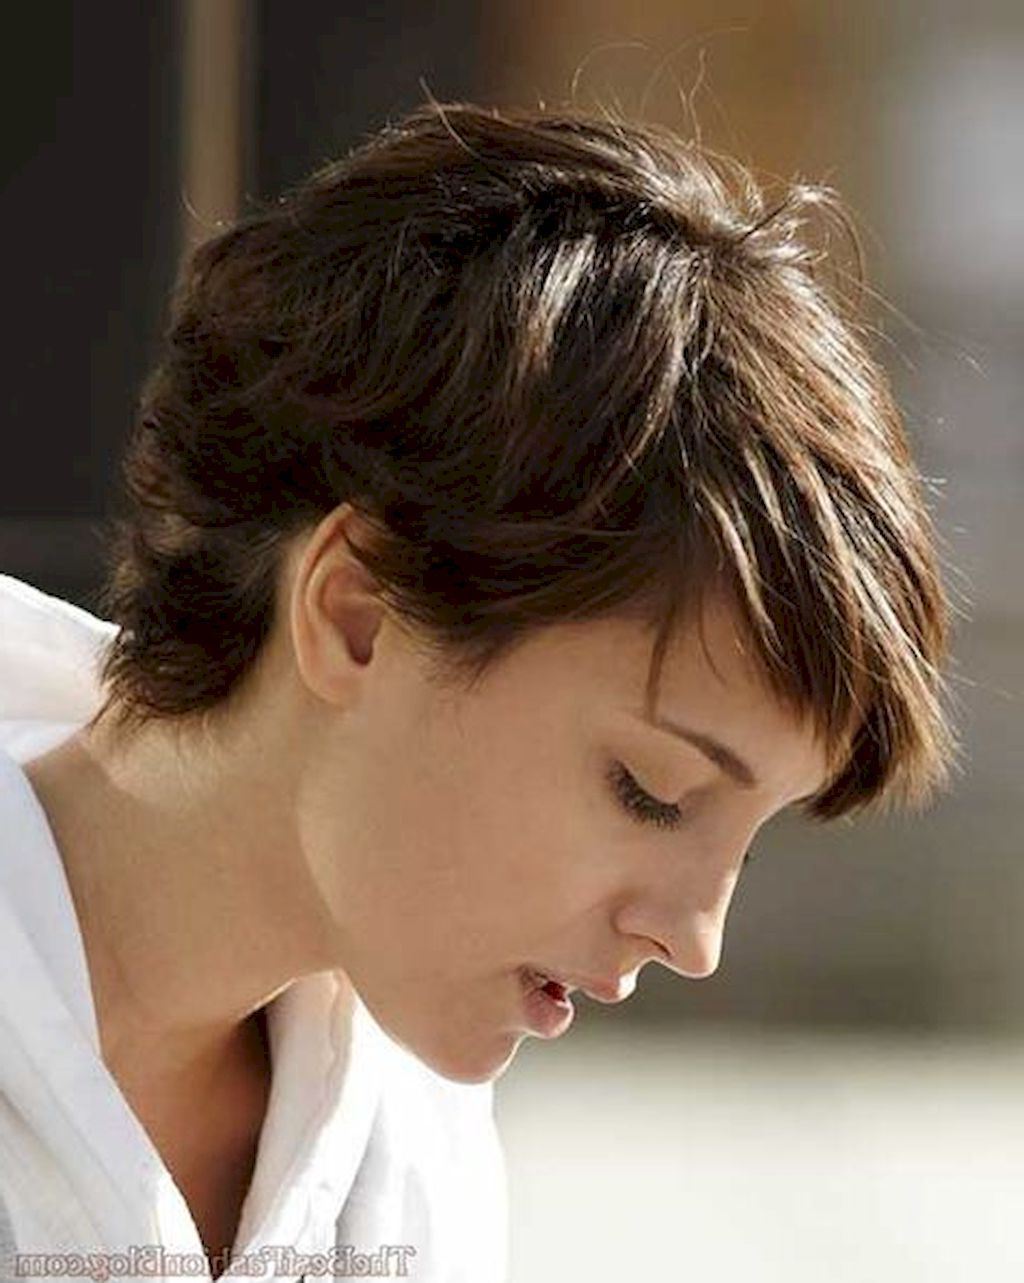 Classy Short Pixie Haircuts And Hairstyles For Thick Hair Regarding Classy Pixie Haircuts (View 17 of 20)